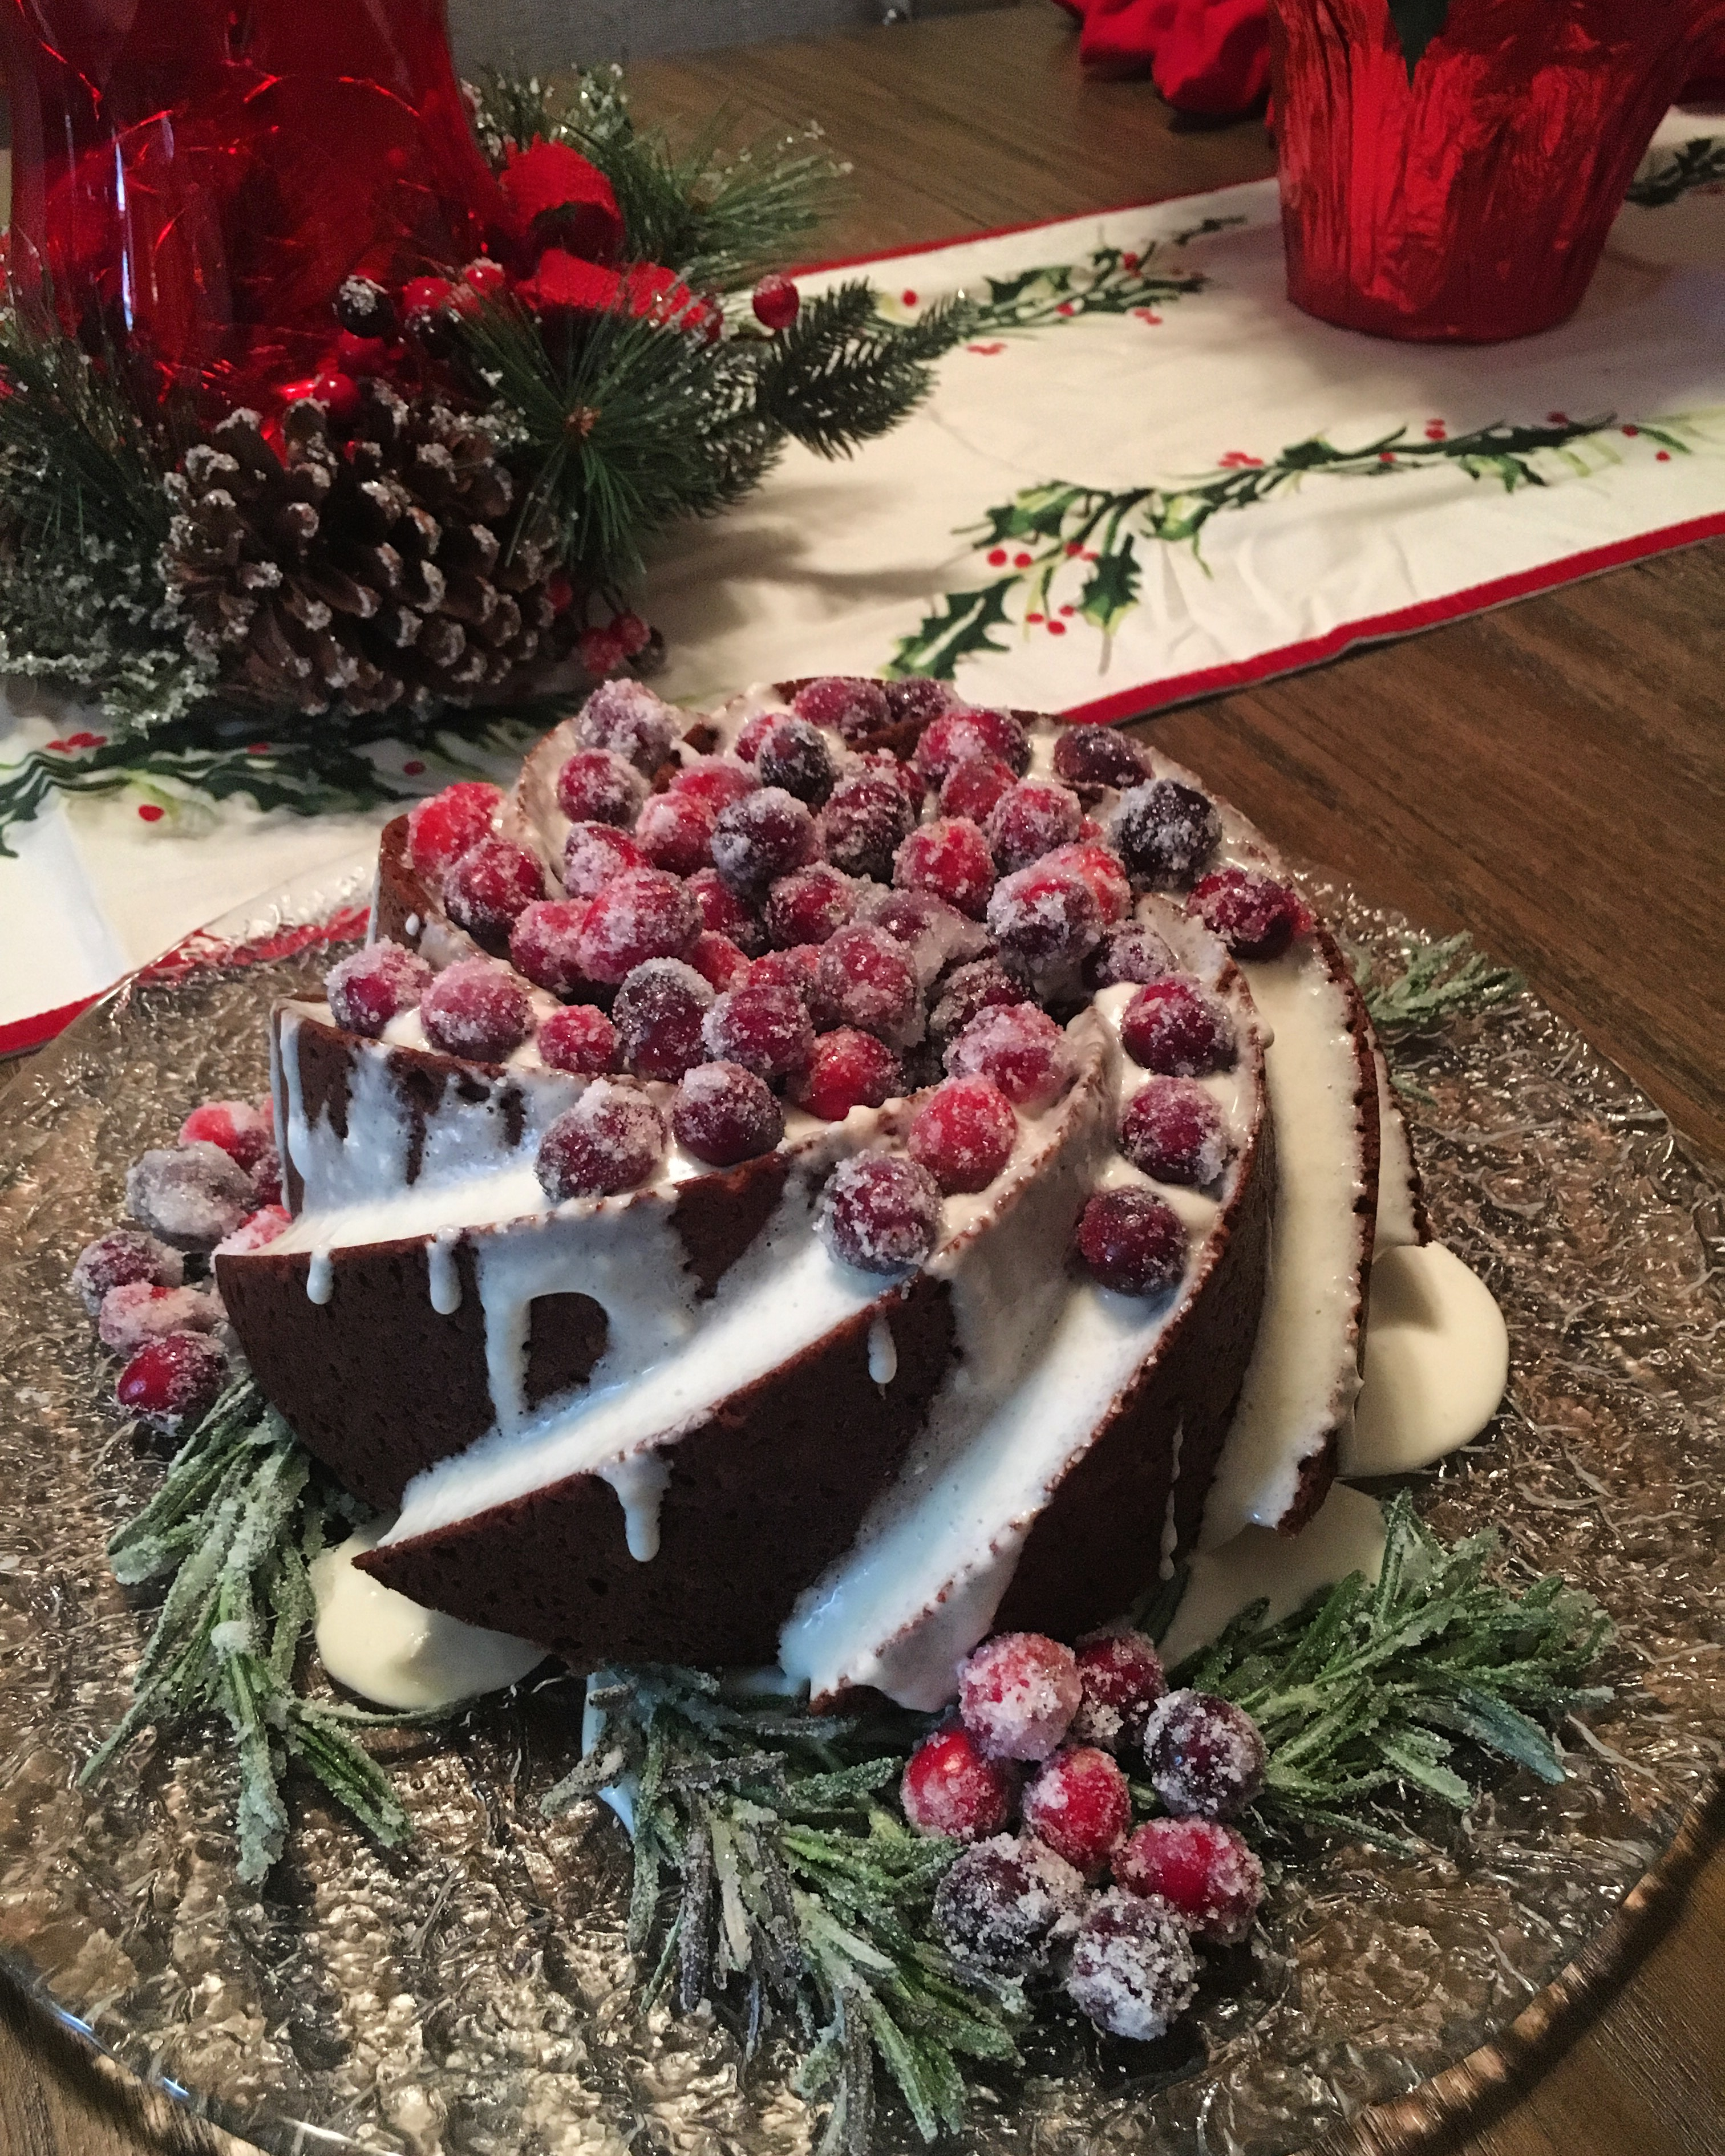 Gingerbread Bundt Cake with Cream Cheese Glaze